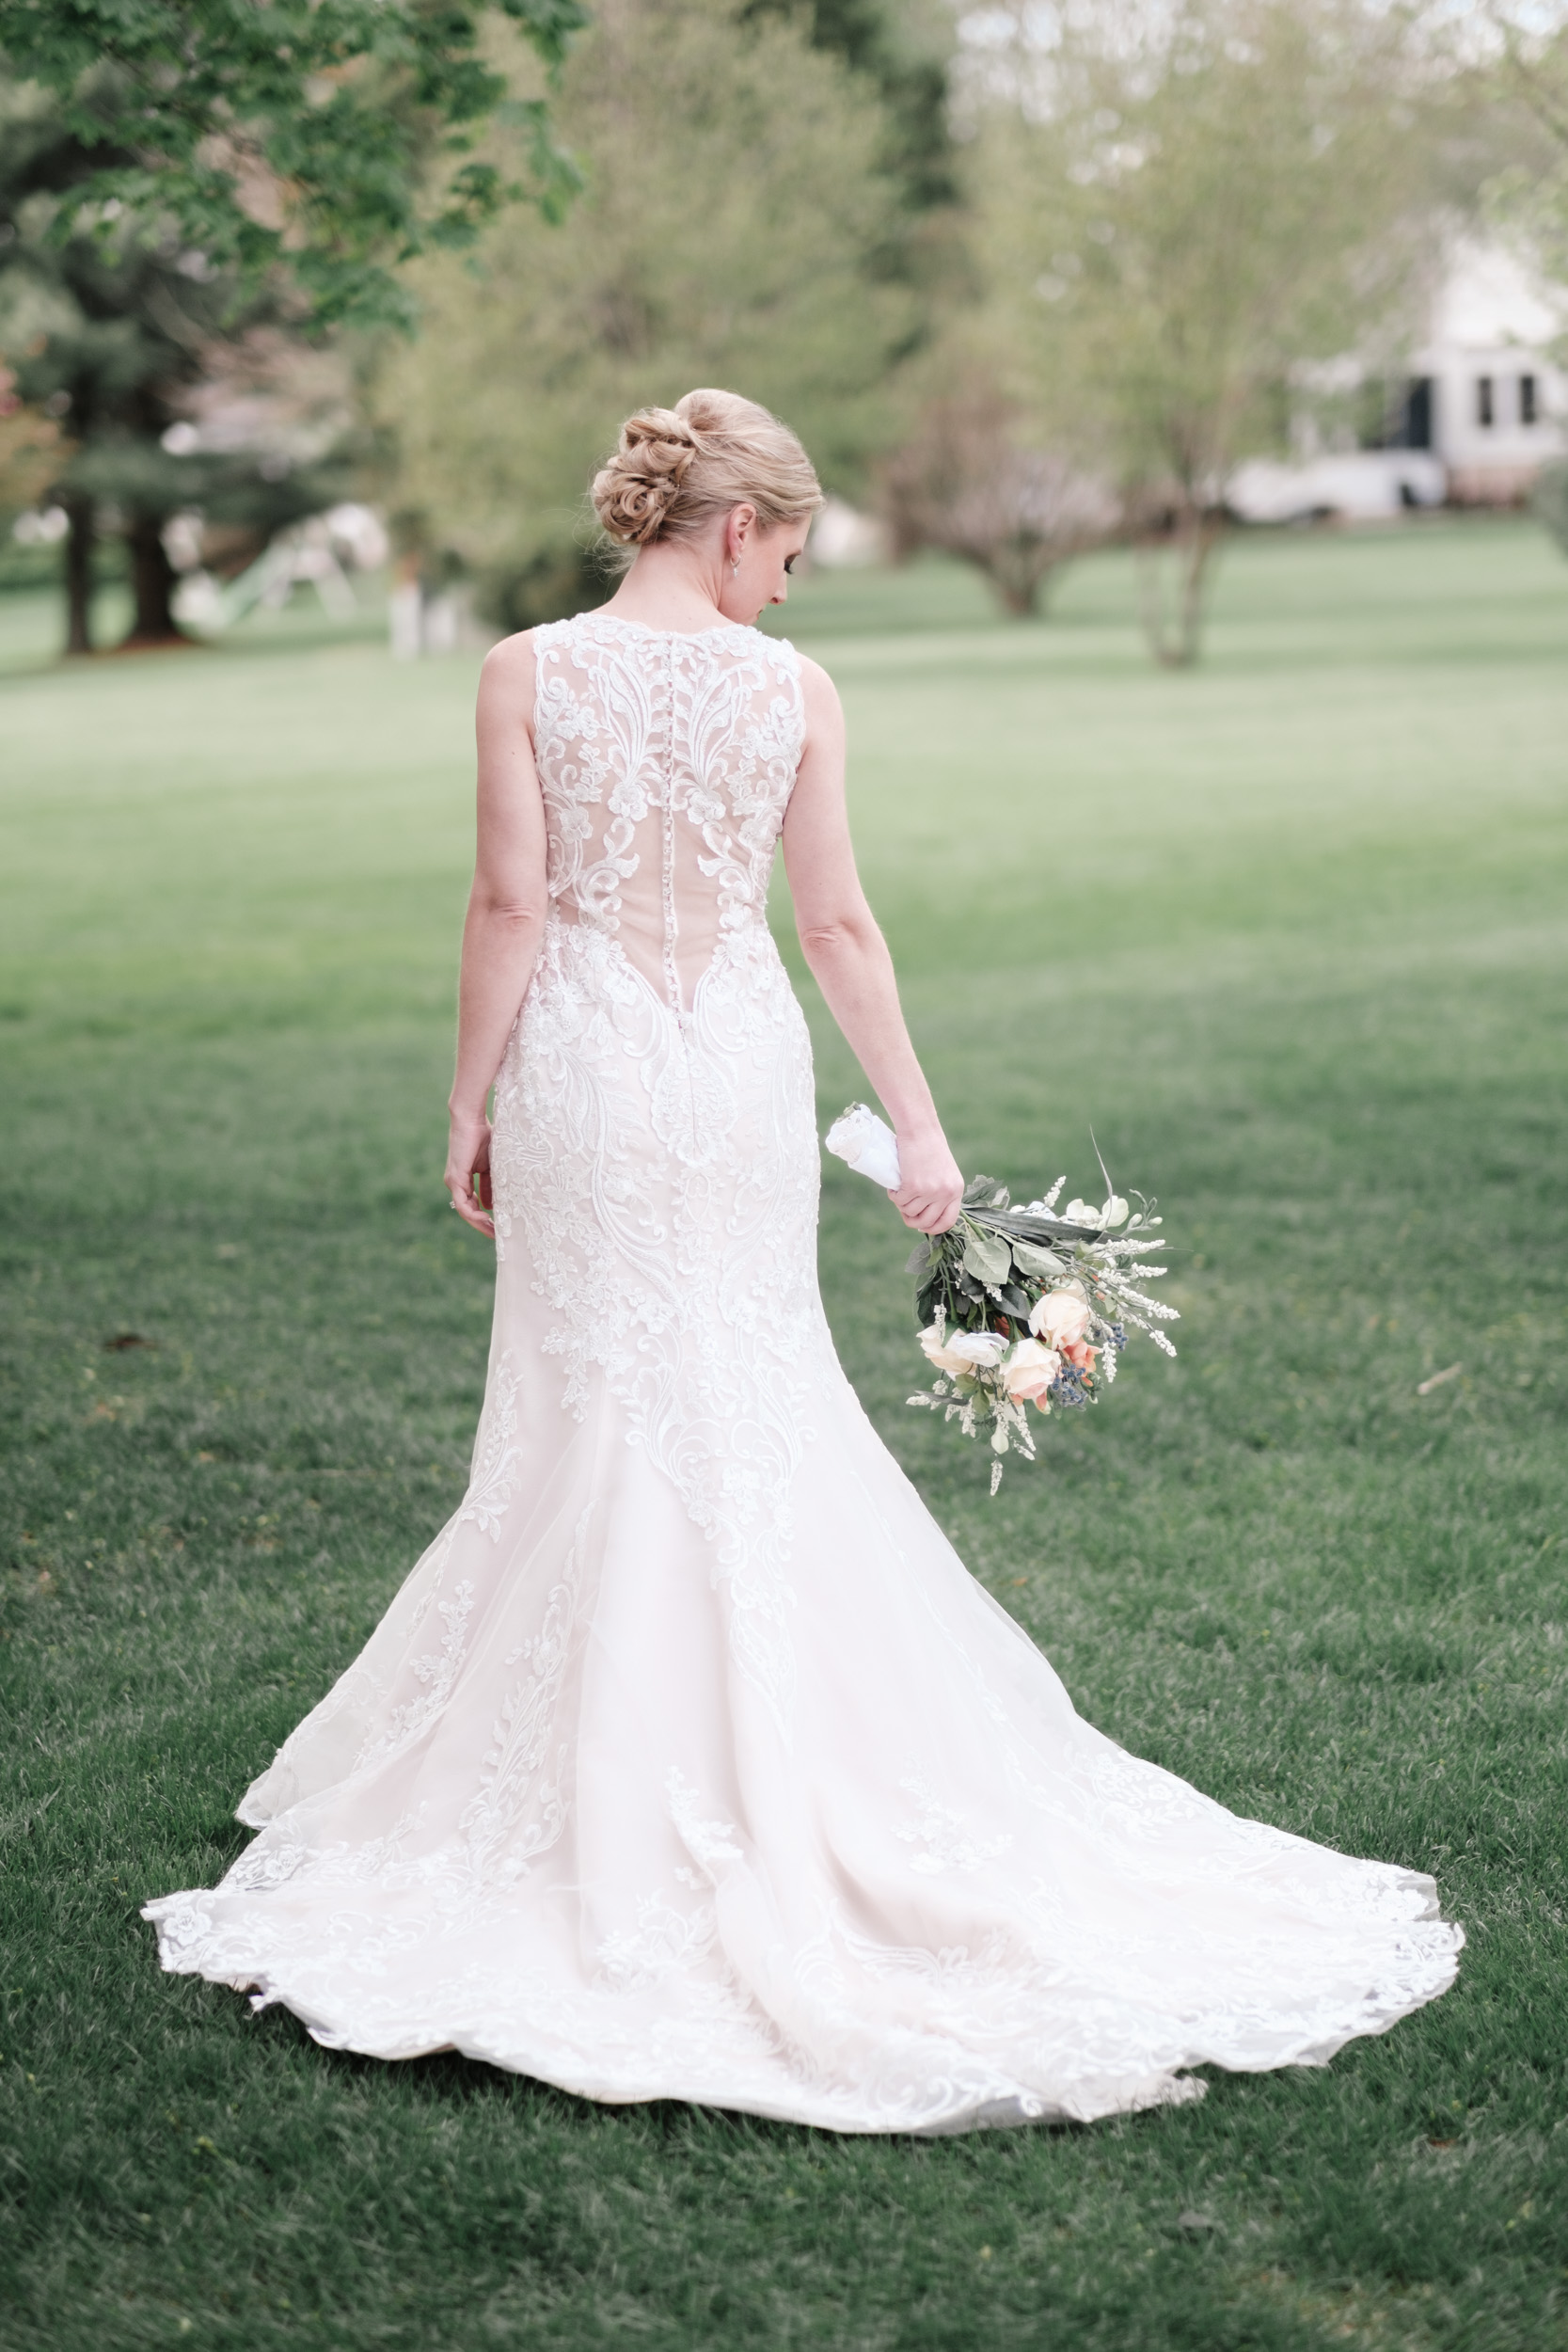 back of brides dress while she hold her flowers by her side and looks down at them